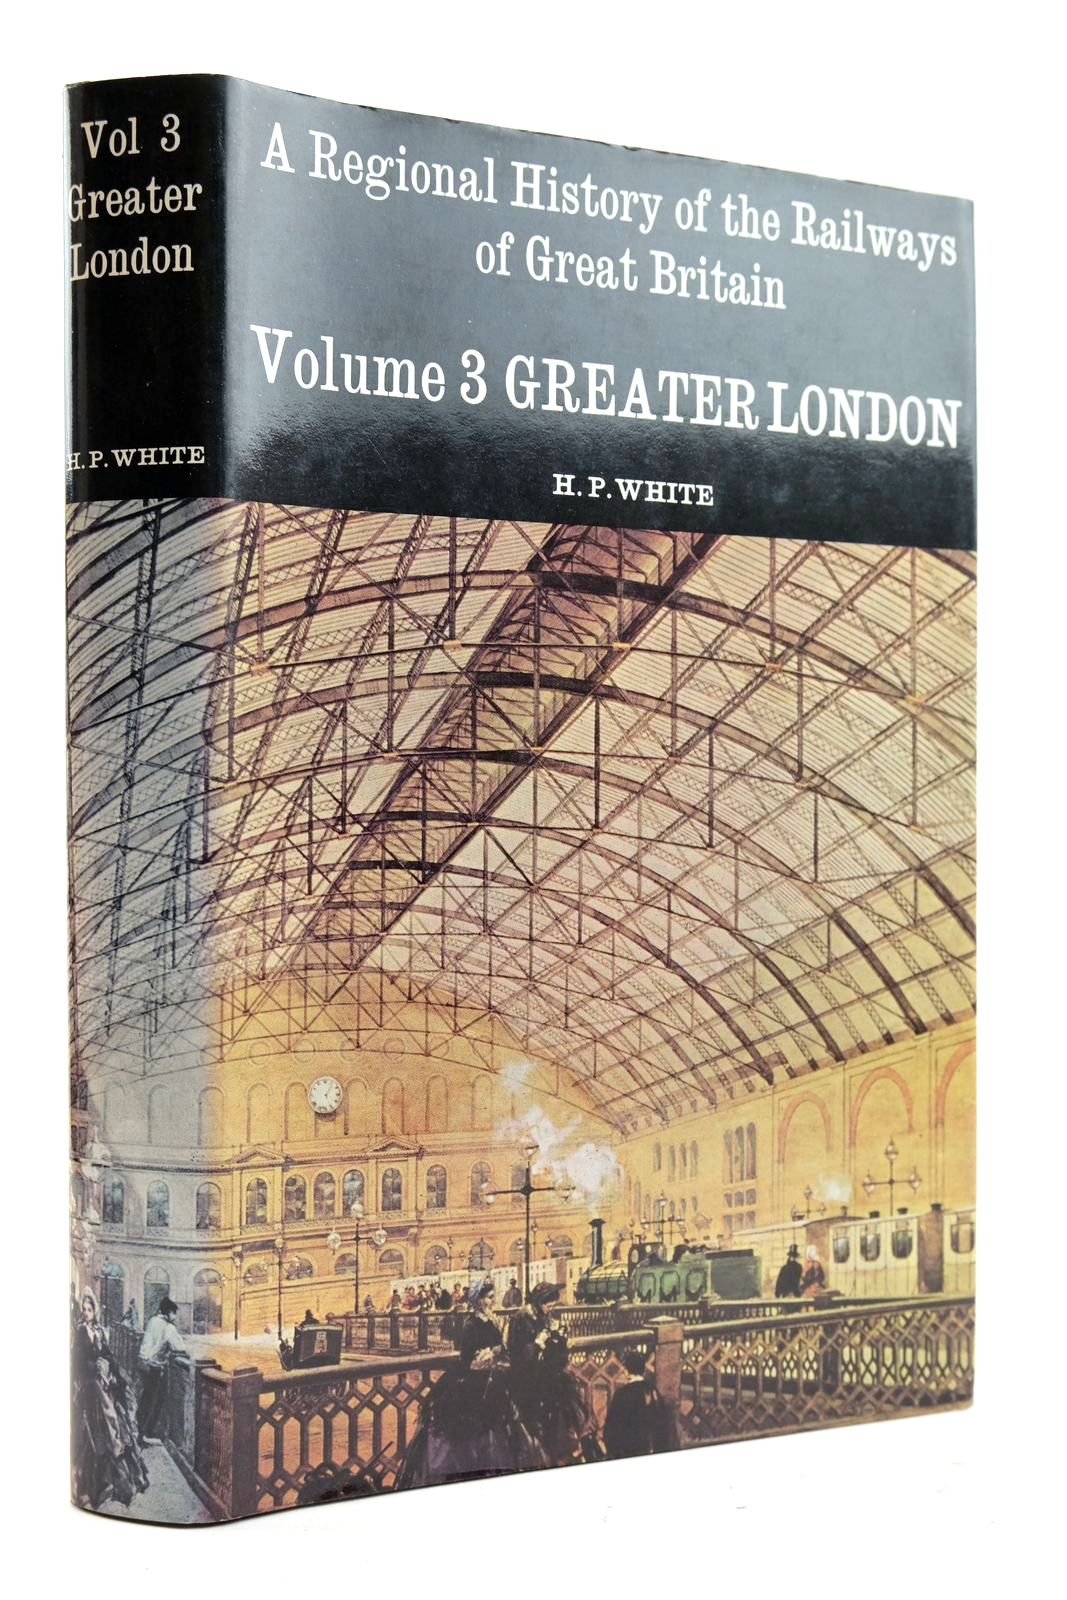 Photo of A REGIONAL HISTORY OF THE RAILWAYS VOLUME 3 GREATER LONDON- Stock Number: 2133055